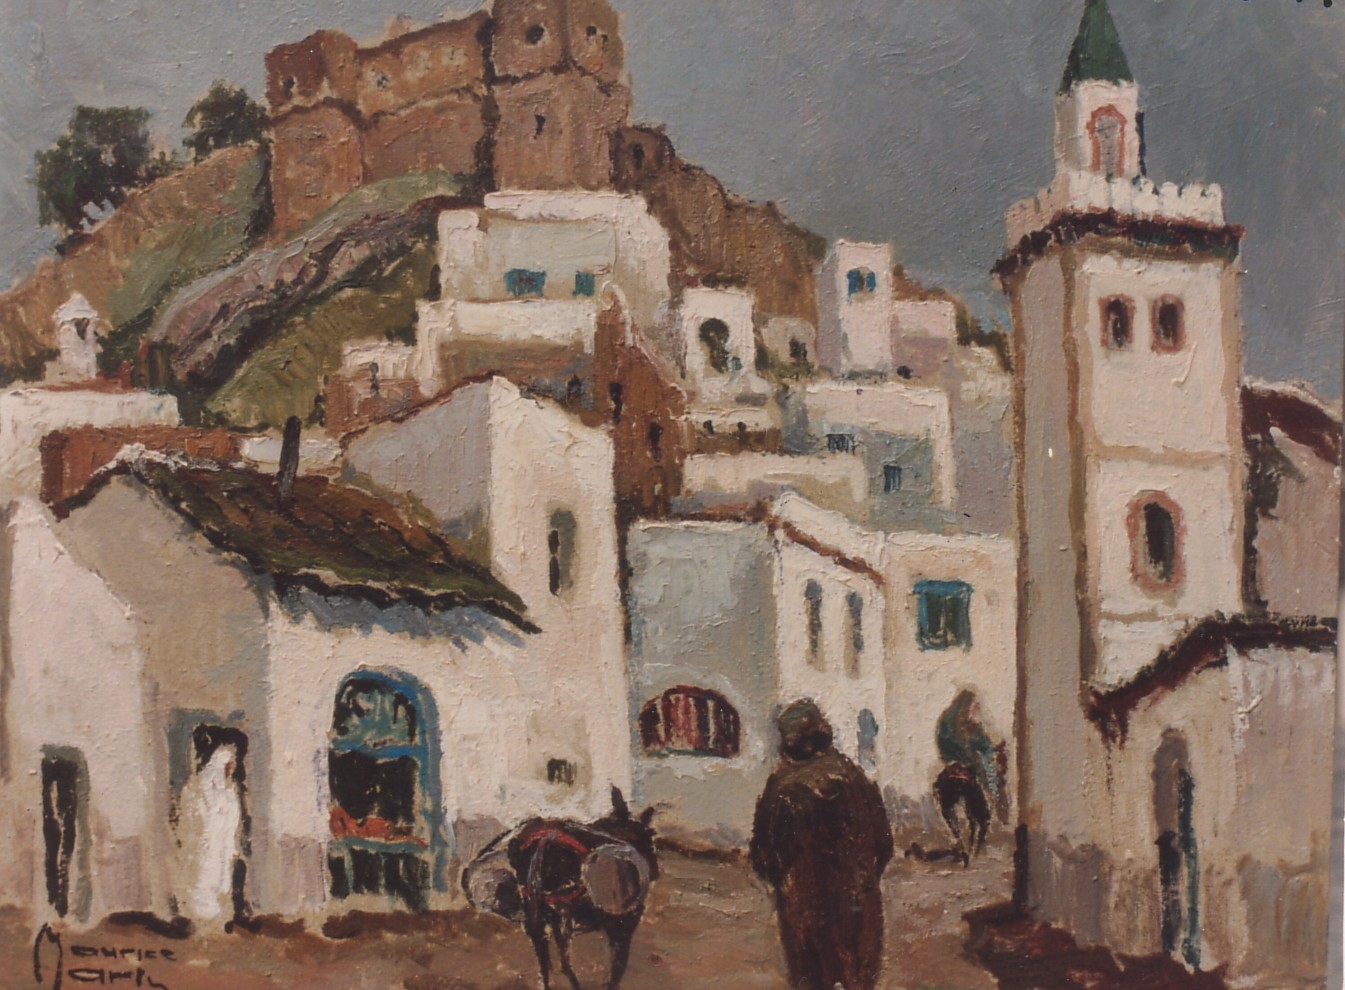 Artist: Maurice Martin Title: The City Center Size: 25in x 31in